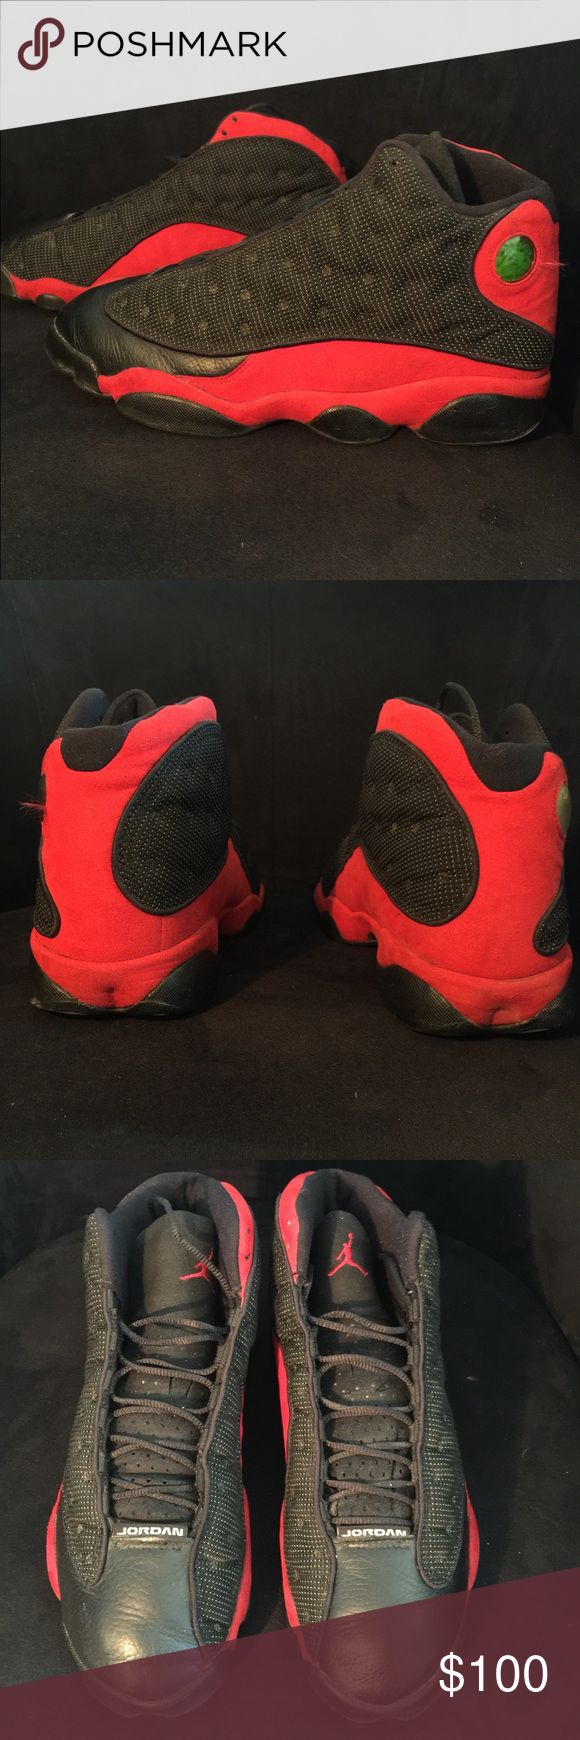 O.G. (Original release) Nike Air Jordan bred 13s These are the originals from the release in 1998 in good condition! Black and red aka BRED 13s from Nike Air Jordan. Size 11.5 in men Jordan Shoes Sneakers